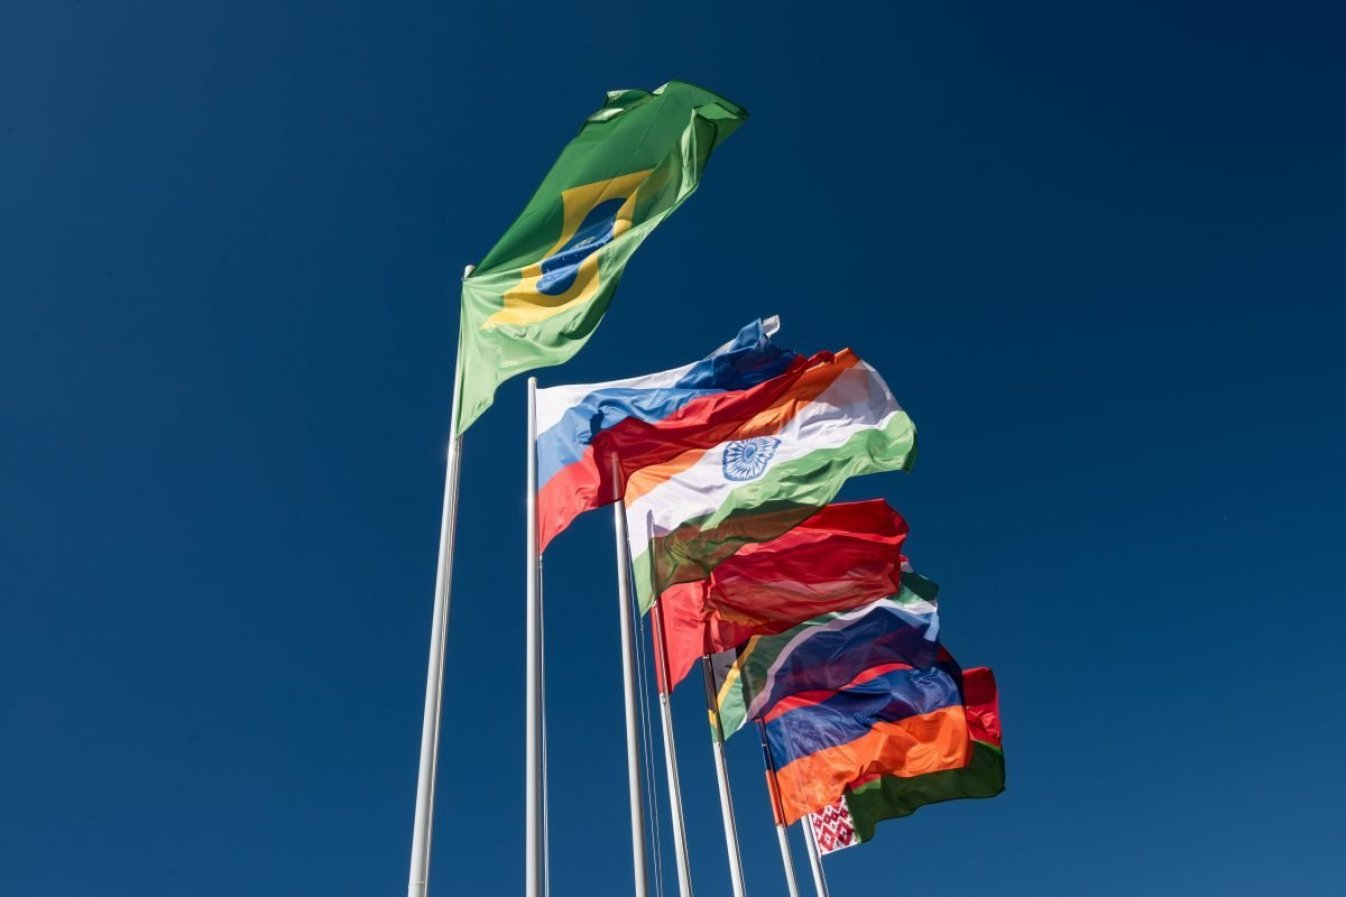 Flags of the BRICS countries in the blue sky.